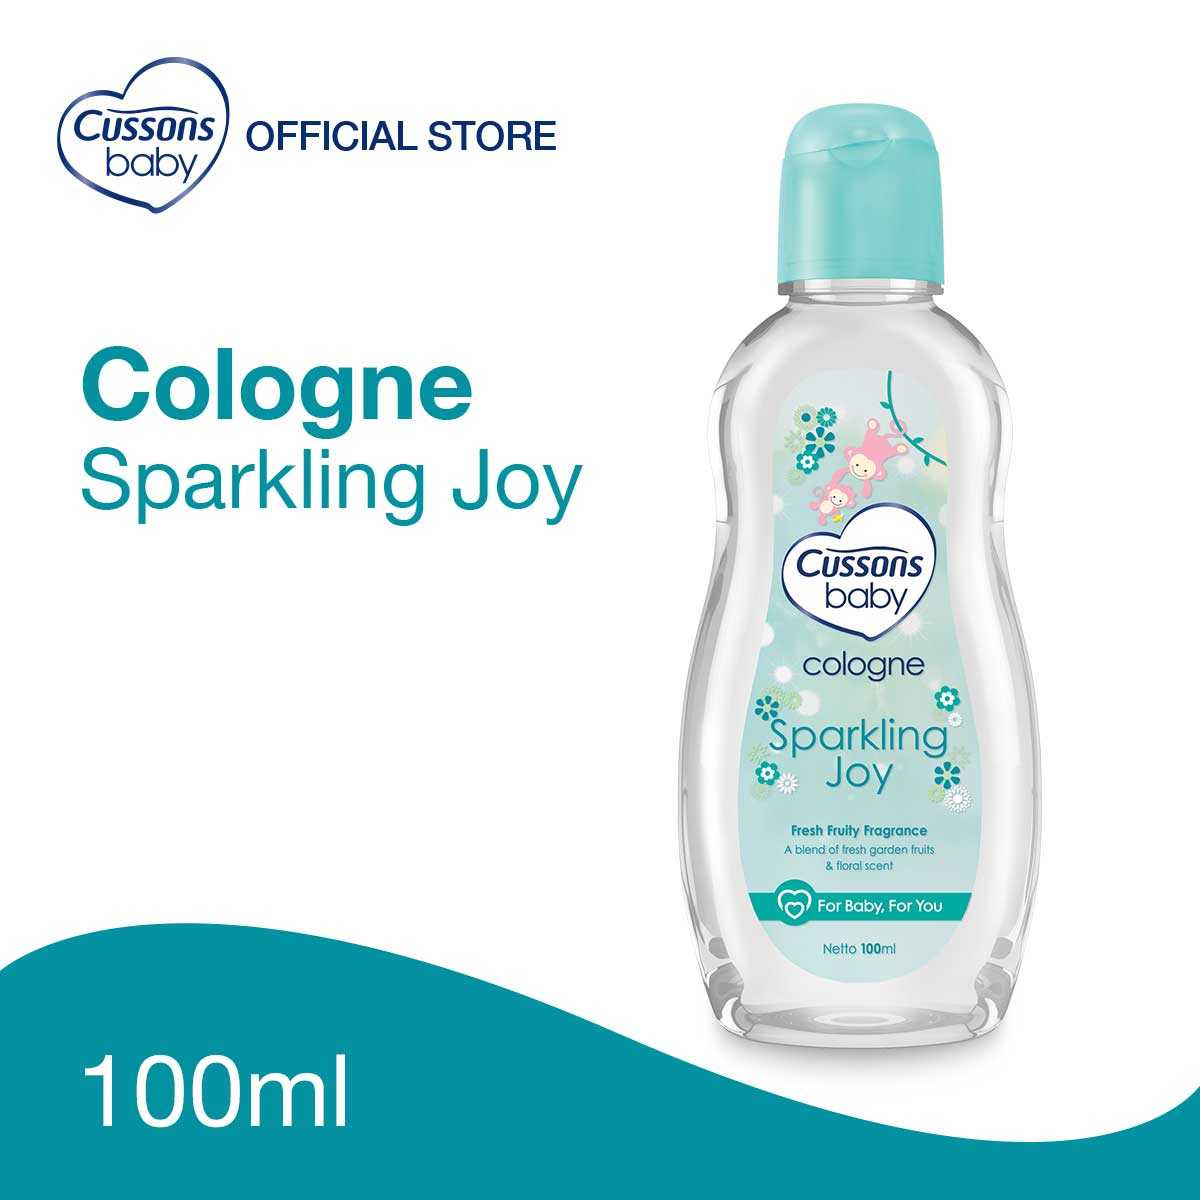 Cussons Baby Cologne Sparkling Joy 100ml